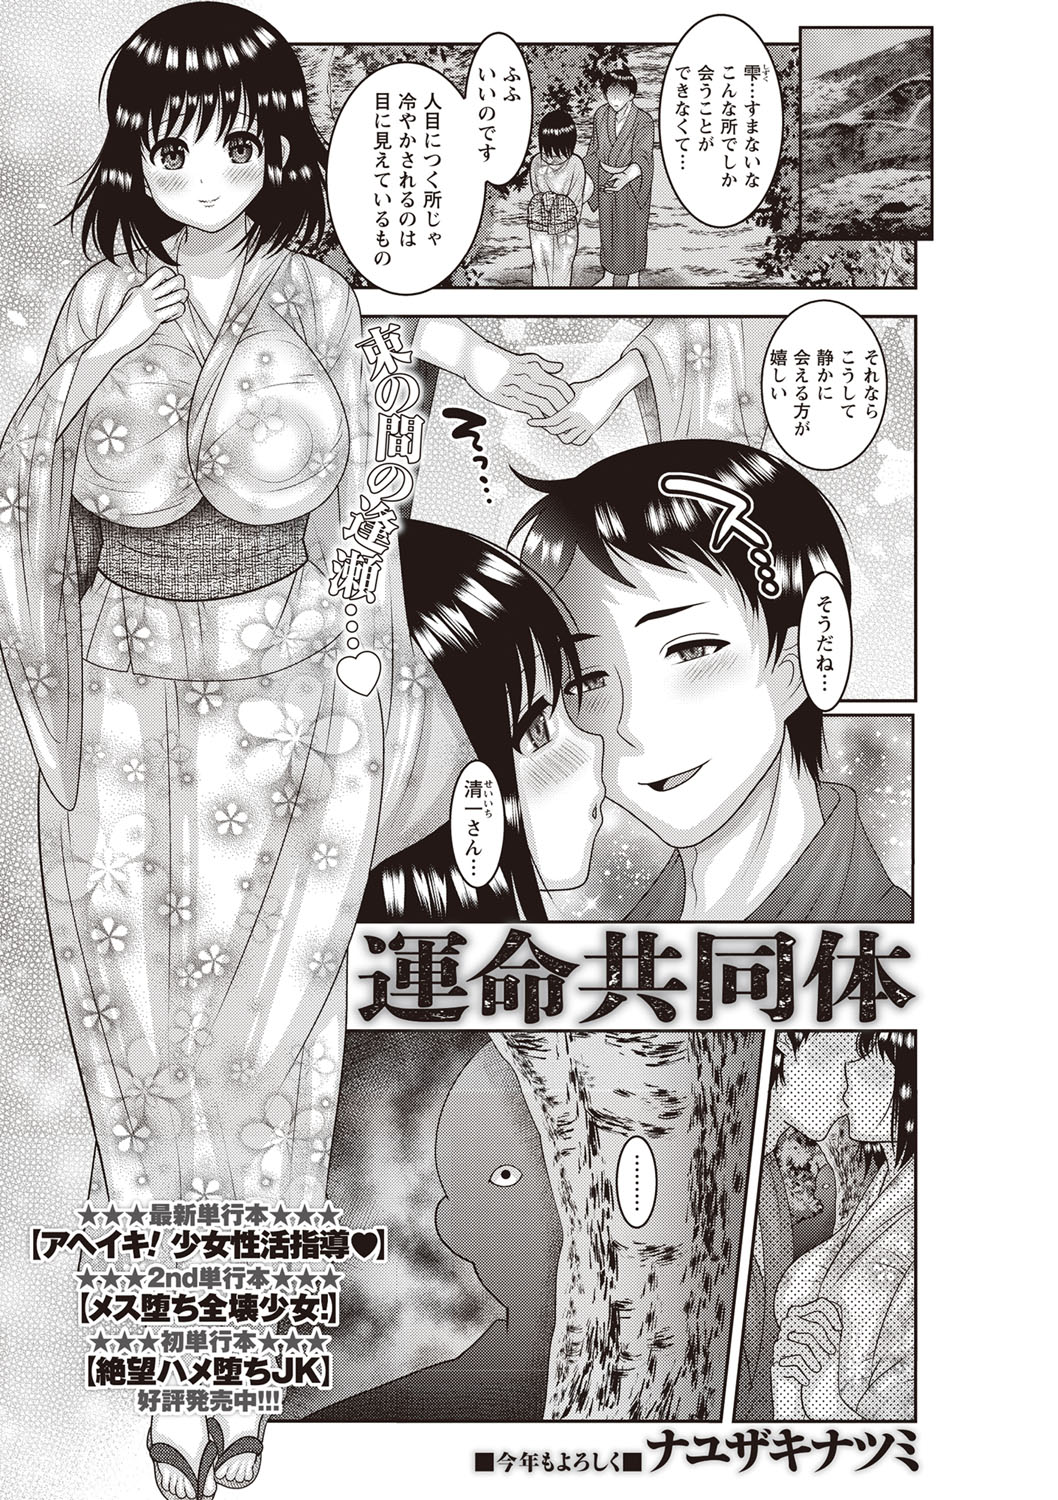 【エロ漫画】村で唯一若い爆乳娘が、村の子供を産むためNTRセックスをさせられる。縛られて処女を奪われ、アヘイキを繰り返すうちにボテ腹になり、ひょっとこ顔でチンポをしゃぶる